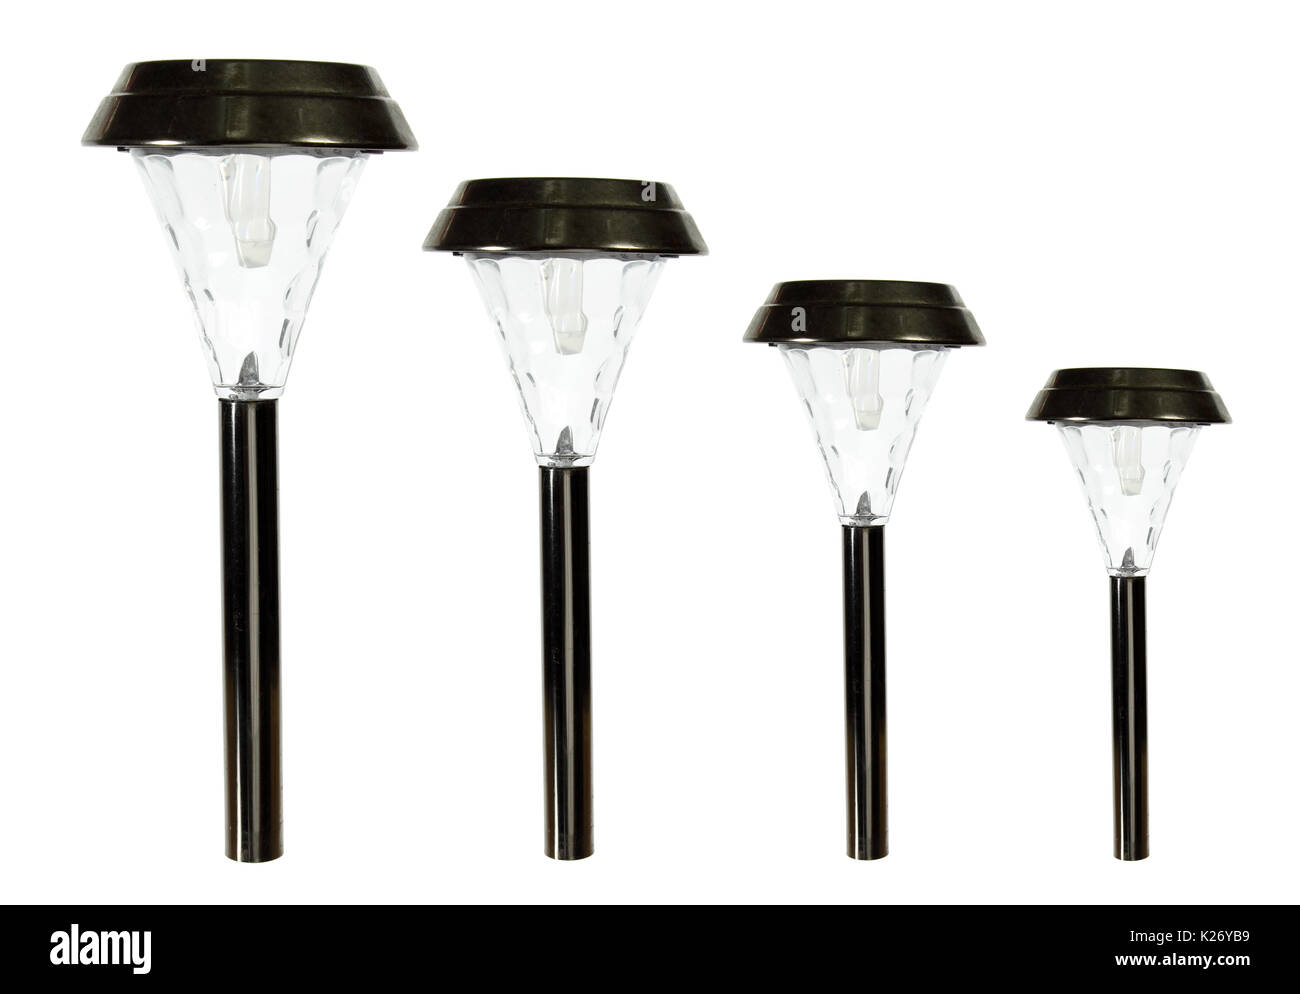 Garden Lamps on White Background - Stock Image